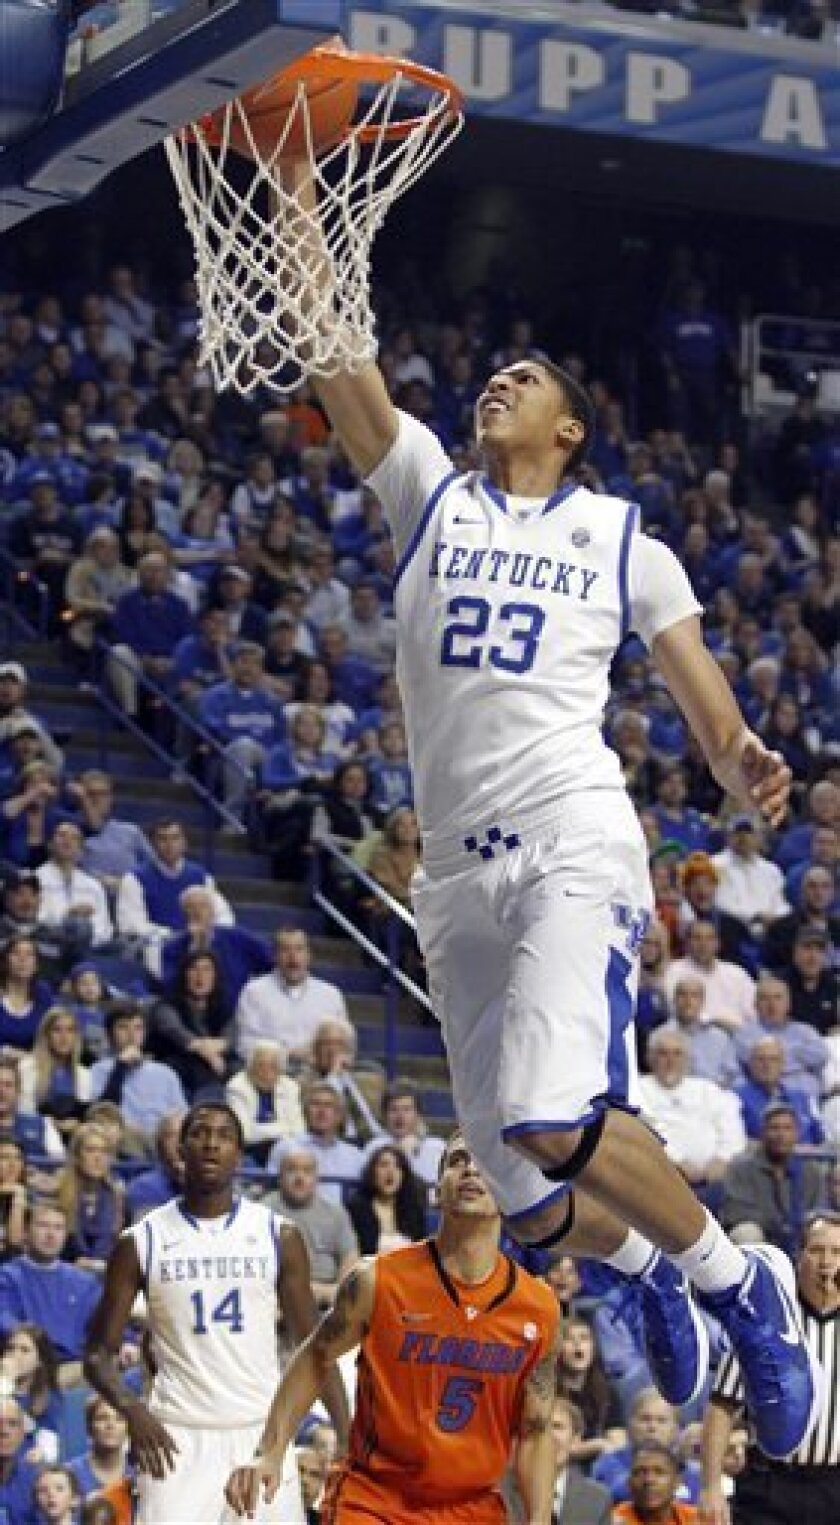 Kentucky's Anthony Davis (23) dunks the ball in front of Florida's Scottie Wilbekin (5) and Kentucky's Michael Kidd-Gilchrist (14) during the first half of an NCAA college basketball game in Lexington, Ky., Tuesday, Feb. 7, 2012. (AP Photo/James Crisp)